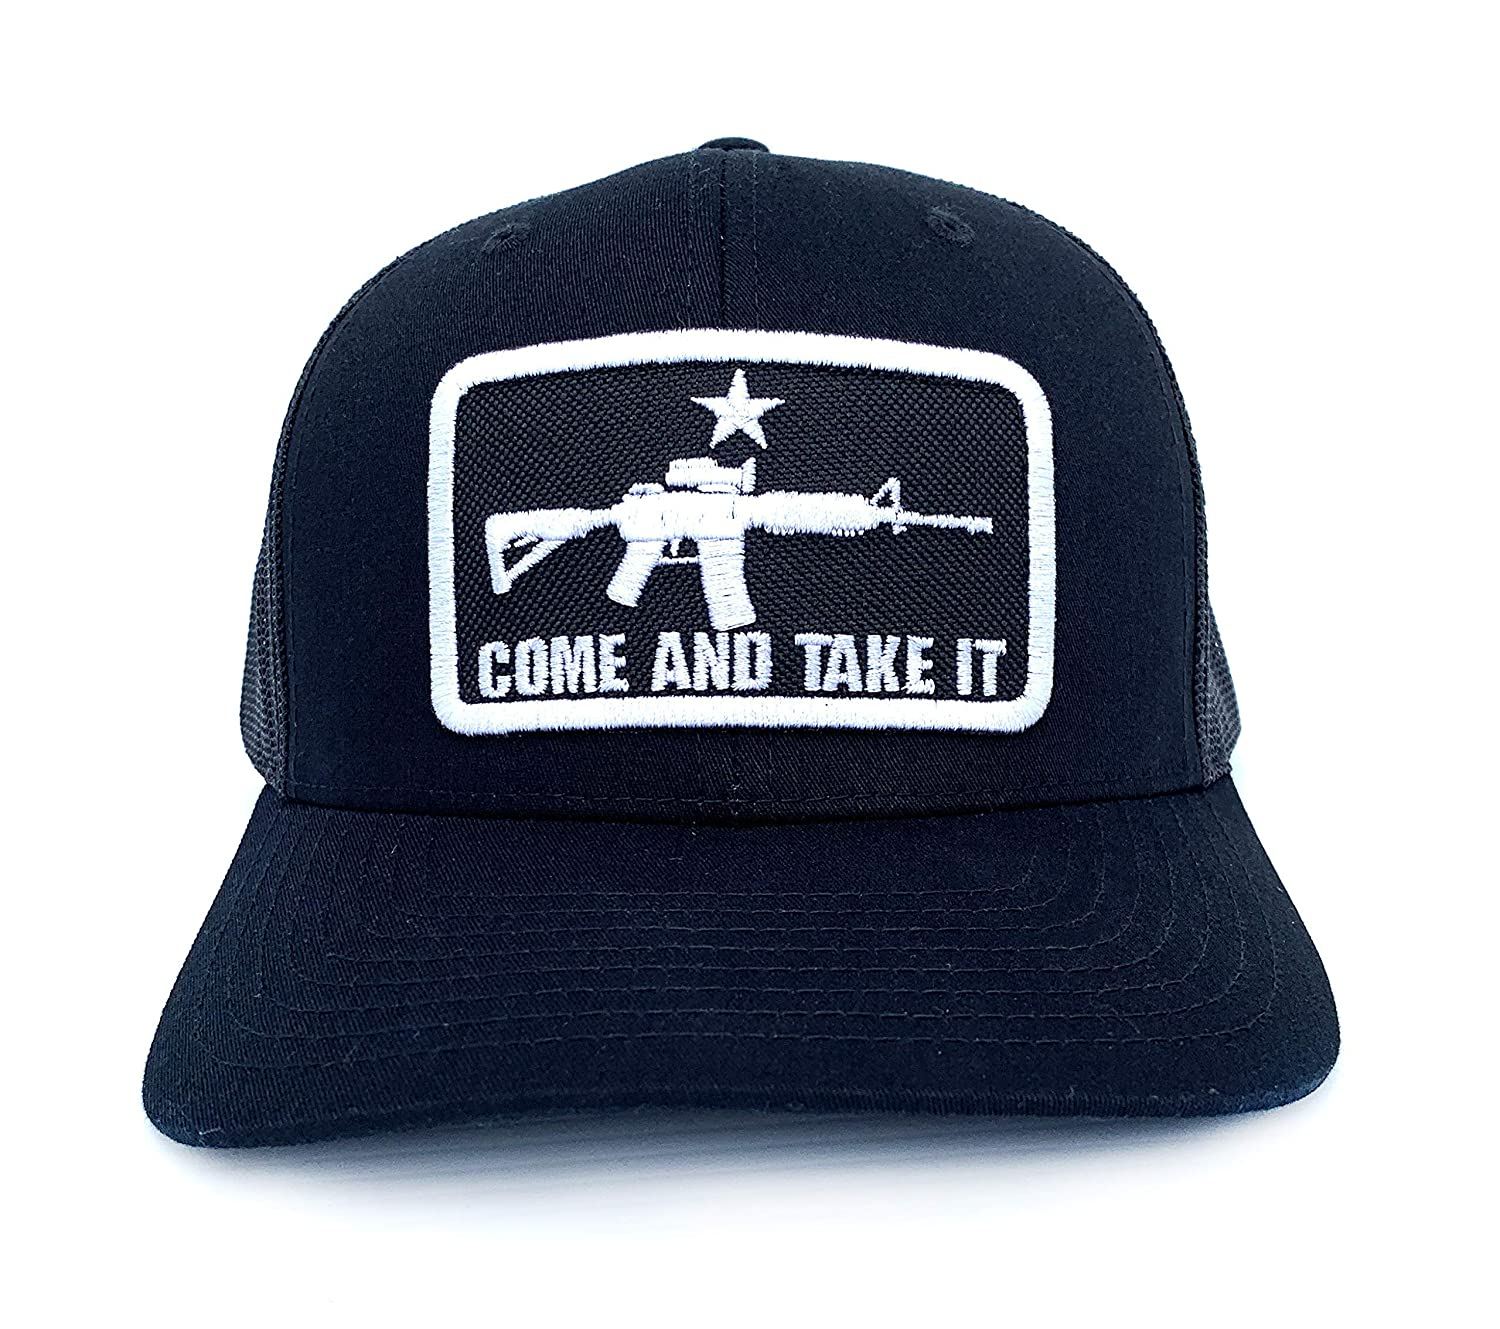 AR-15 Come Discount is also Department store underway and Take Cap Trucker Hat It